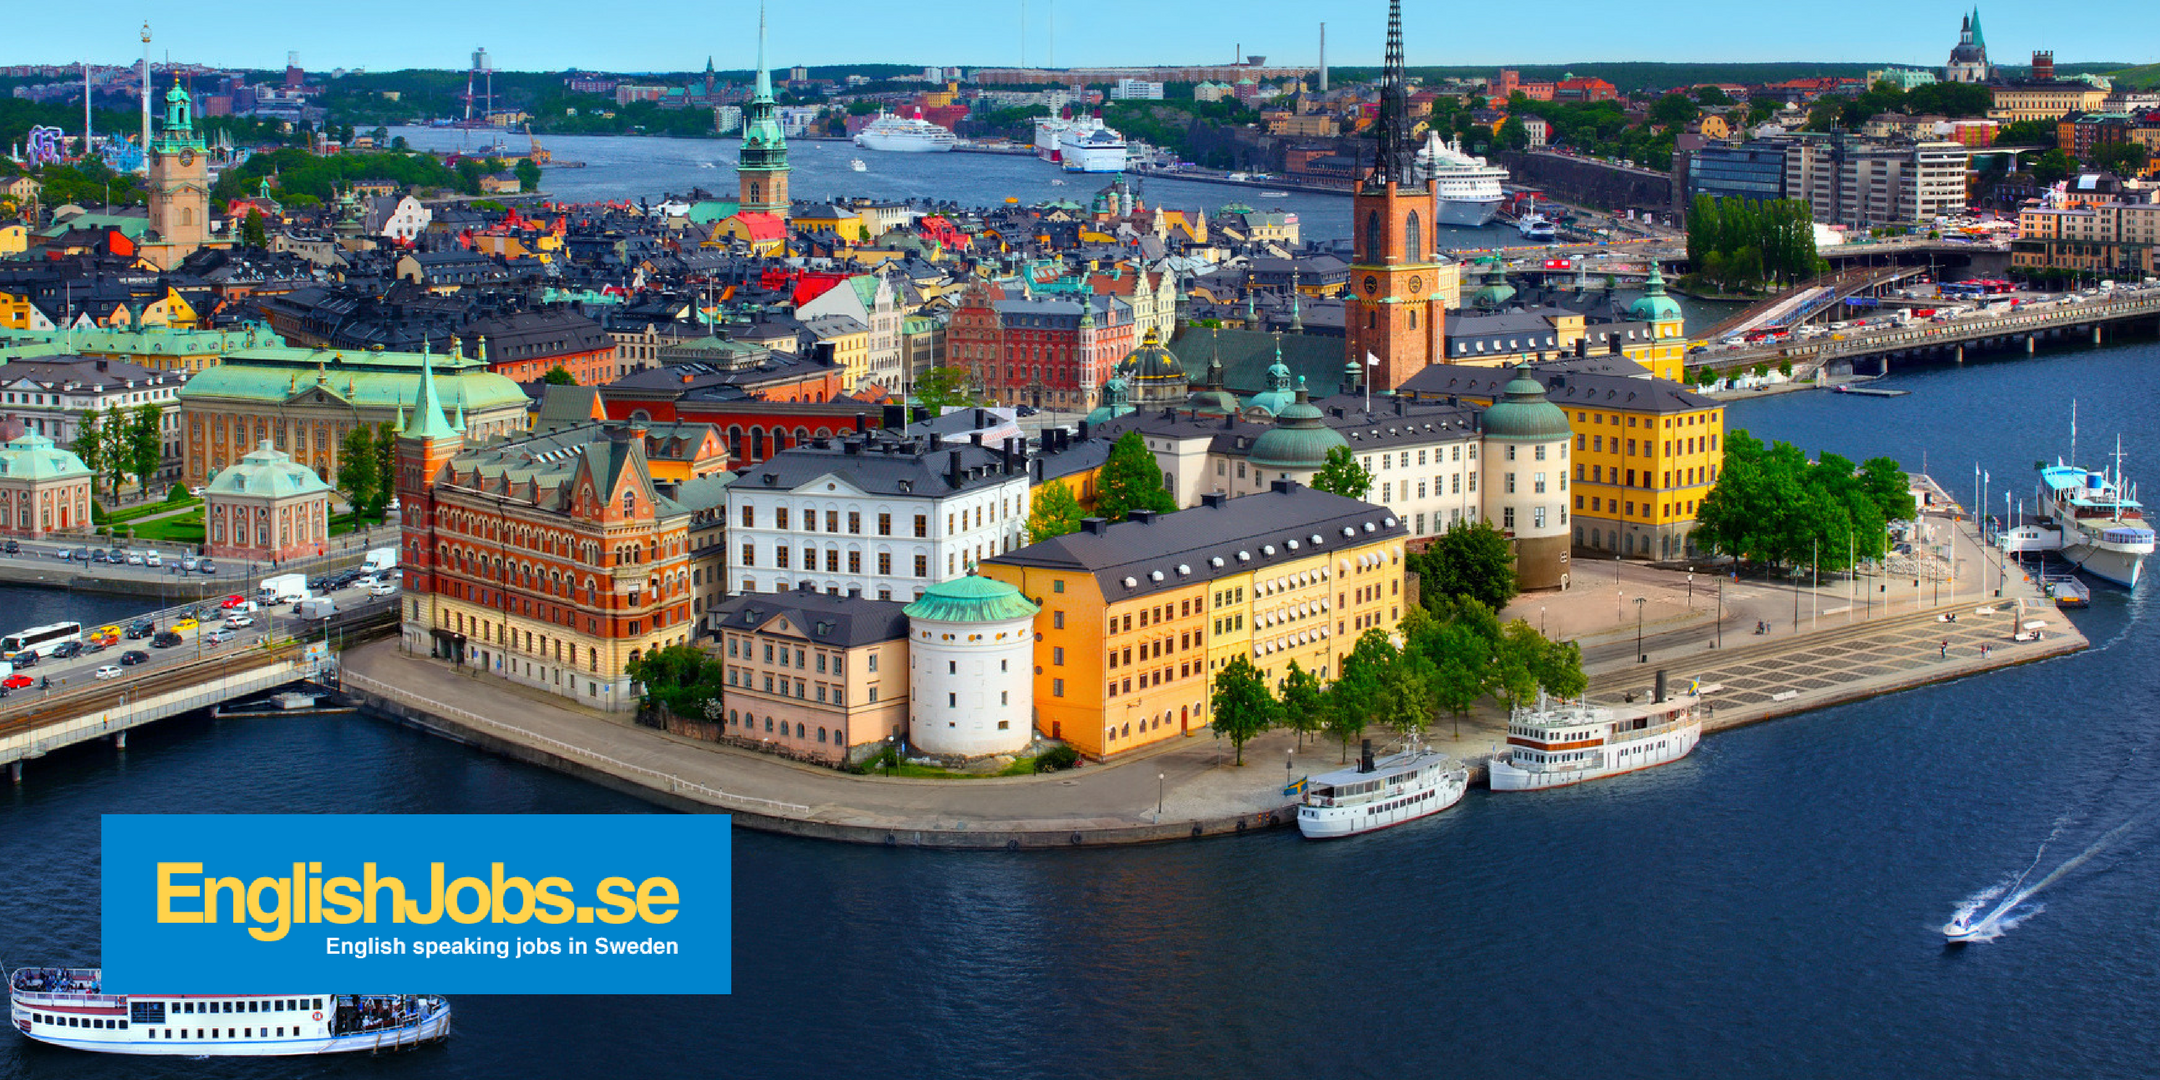 Work in Europe (Sweden, Denmark, Germany) - Your job search from San Francisco to Stockholm